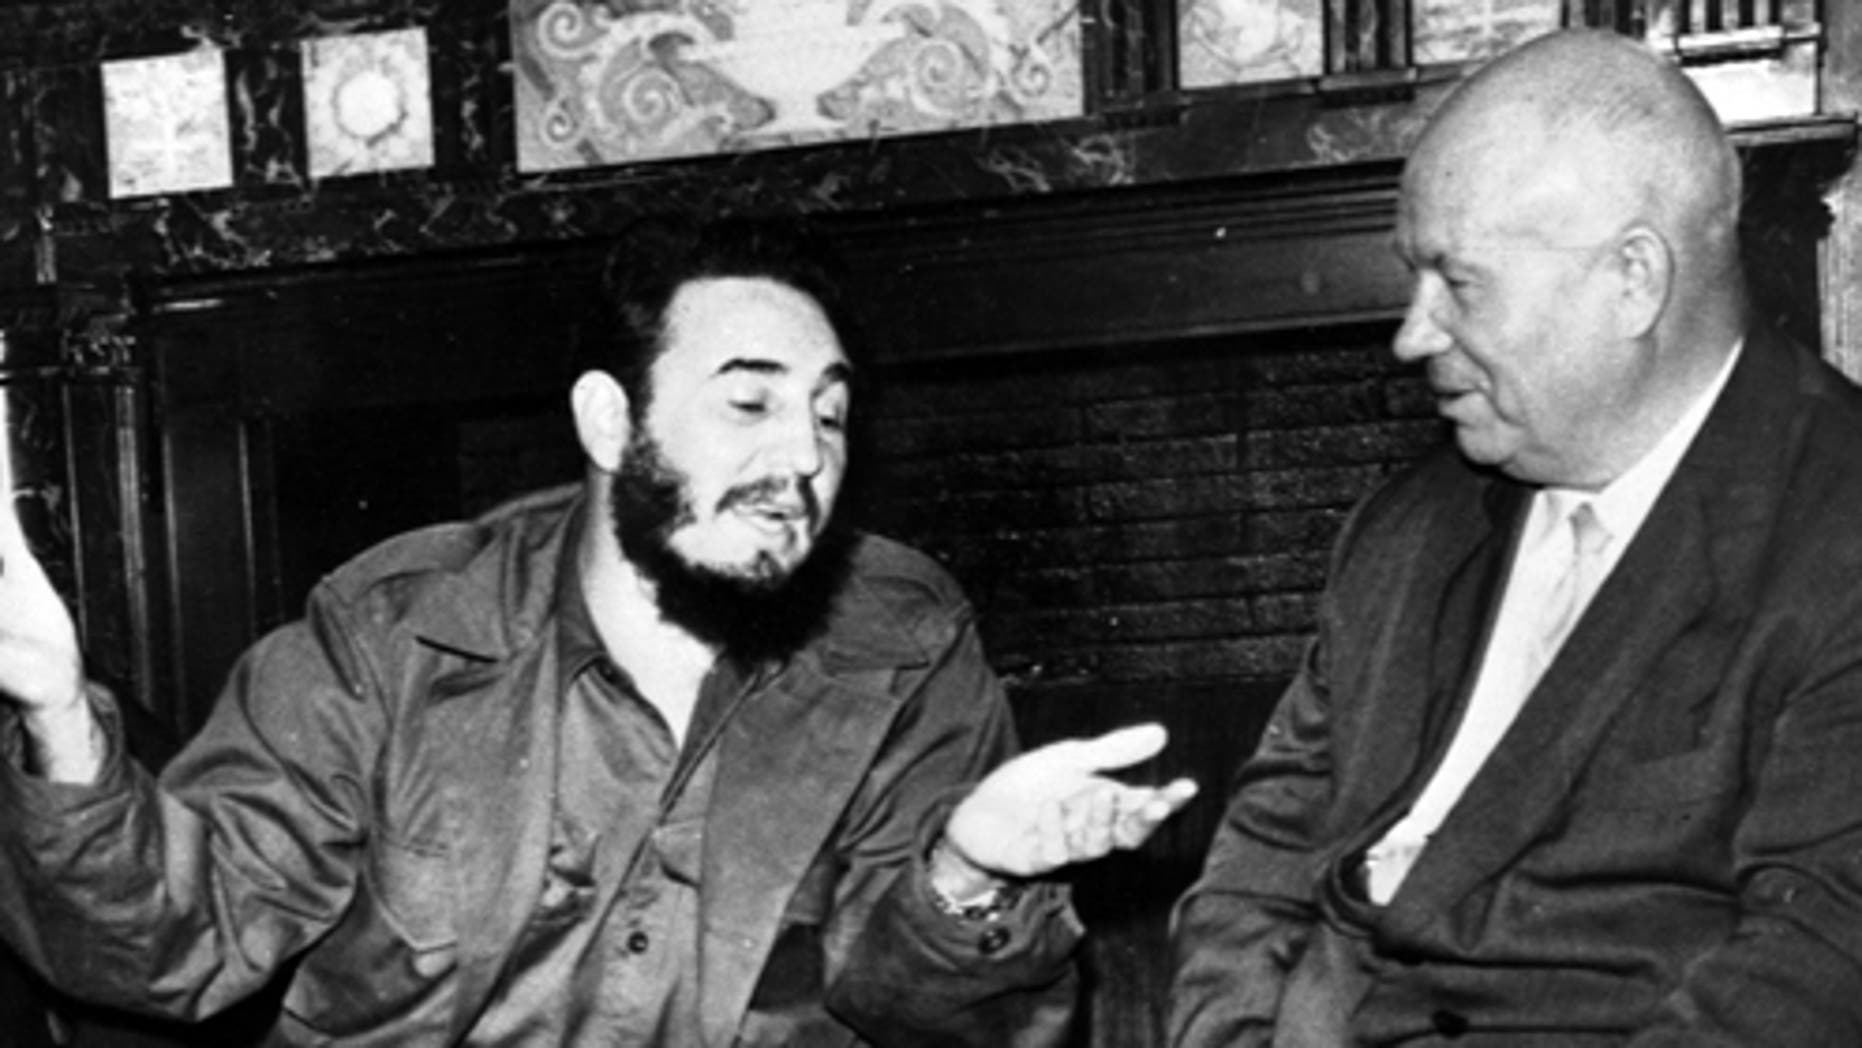 In this Sept. 20, 1960 photo, Cuba's leader Fidel Castro, center, speaks with Soviet Premier Nikita Khrushchev, right, as his Foreign Minister Raul Roa, left, looks on at the Hotel Theresa during the United Nations General Assembly in New York. The world stood at the brink of Armageddon for 13 days in October 1962 when President John F. Kennedy drew a symbolic line in the Atlantic and warned of dire consequences if Soviet Premier Nikita Khrushchev dared to cross it. On the eve of the 50th anniversary of the Cuban missile crisis, historians now say it was behind-the-scenes compromise rather than a high-stakes game of chicken that resolved the faceoff, that both Washington and Moscow wound up winners and that the crisis lasted far longer than 13 days.  (AP Photo/Prensa Latina via AP Images)